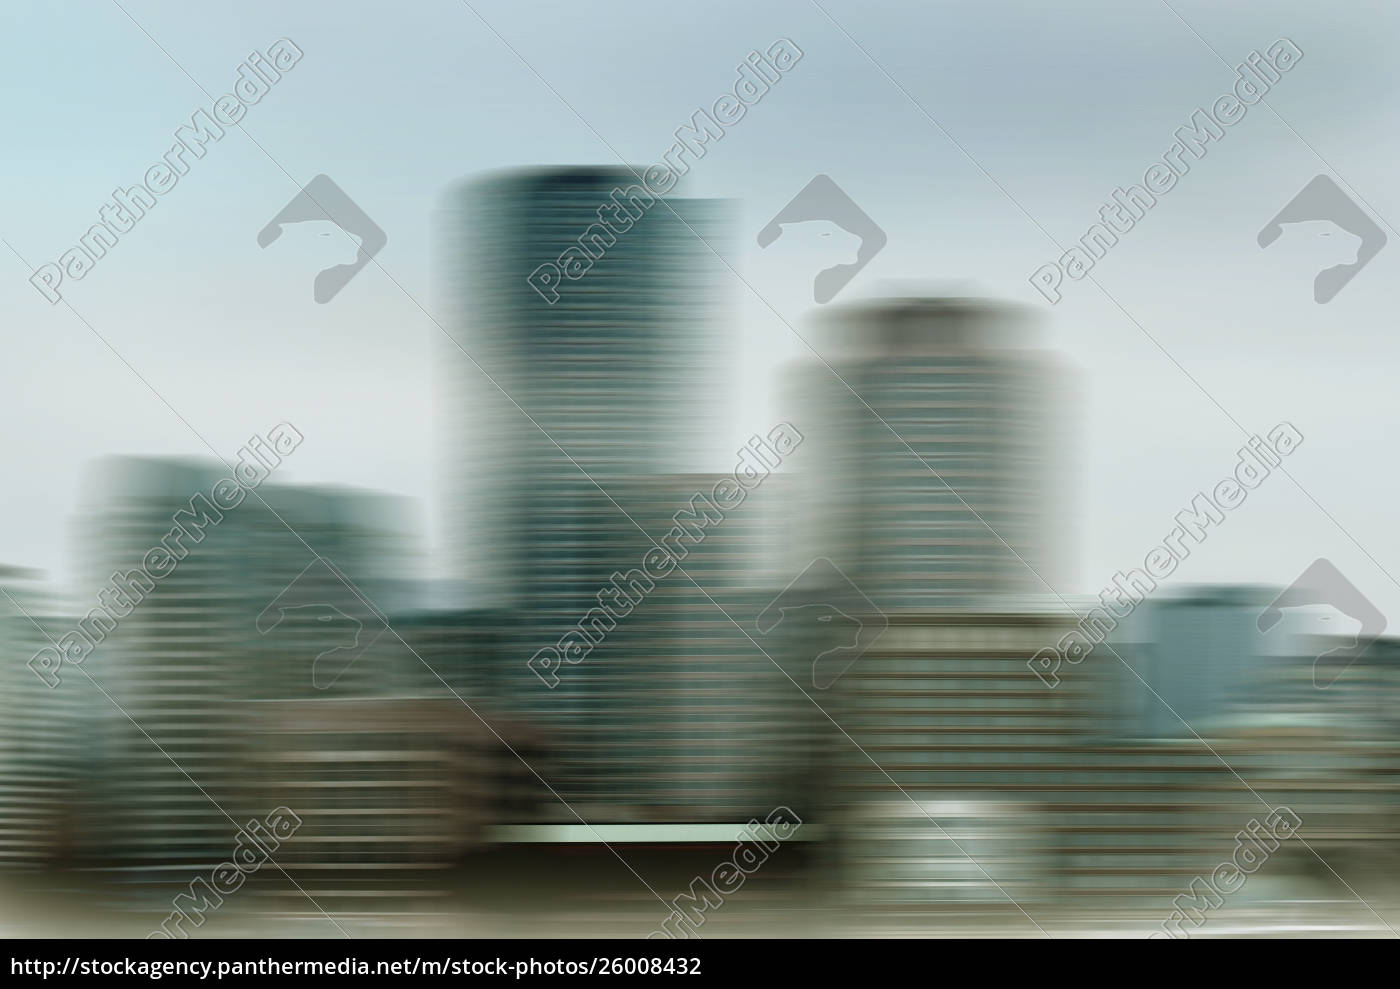 abstract, blurred, motion, cityscape - 26008432